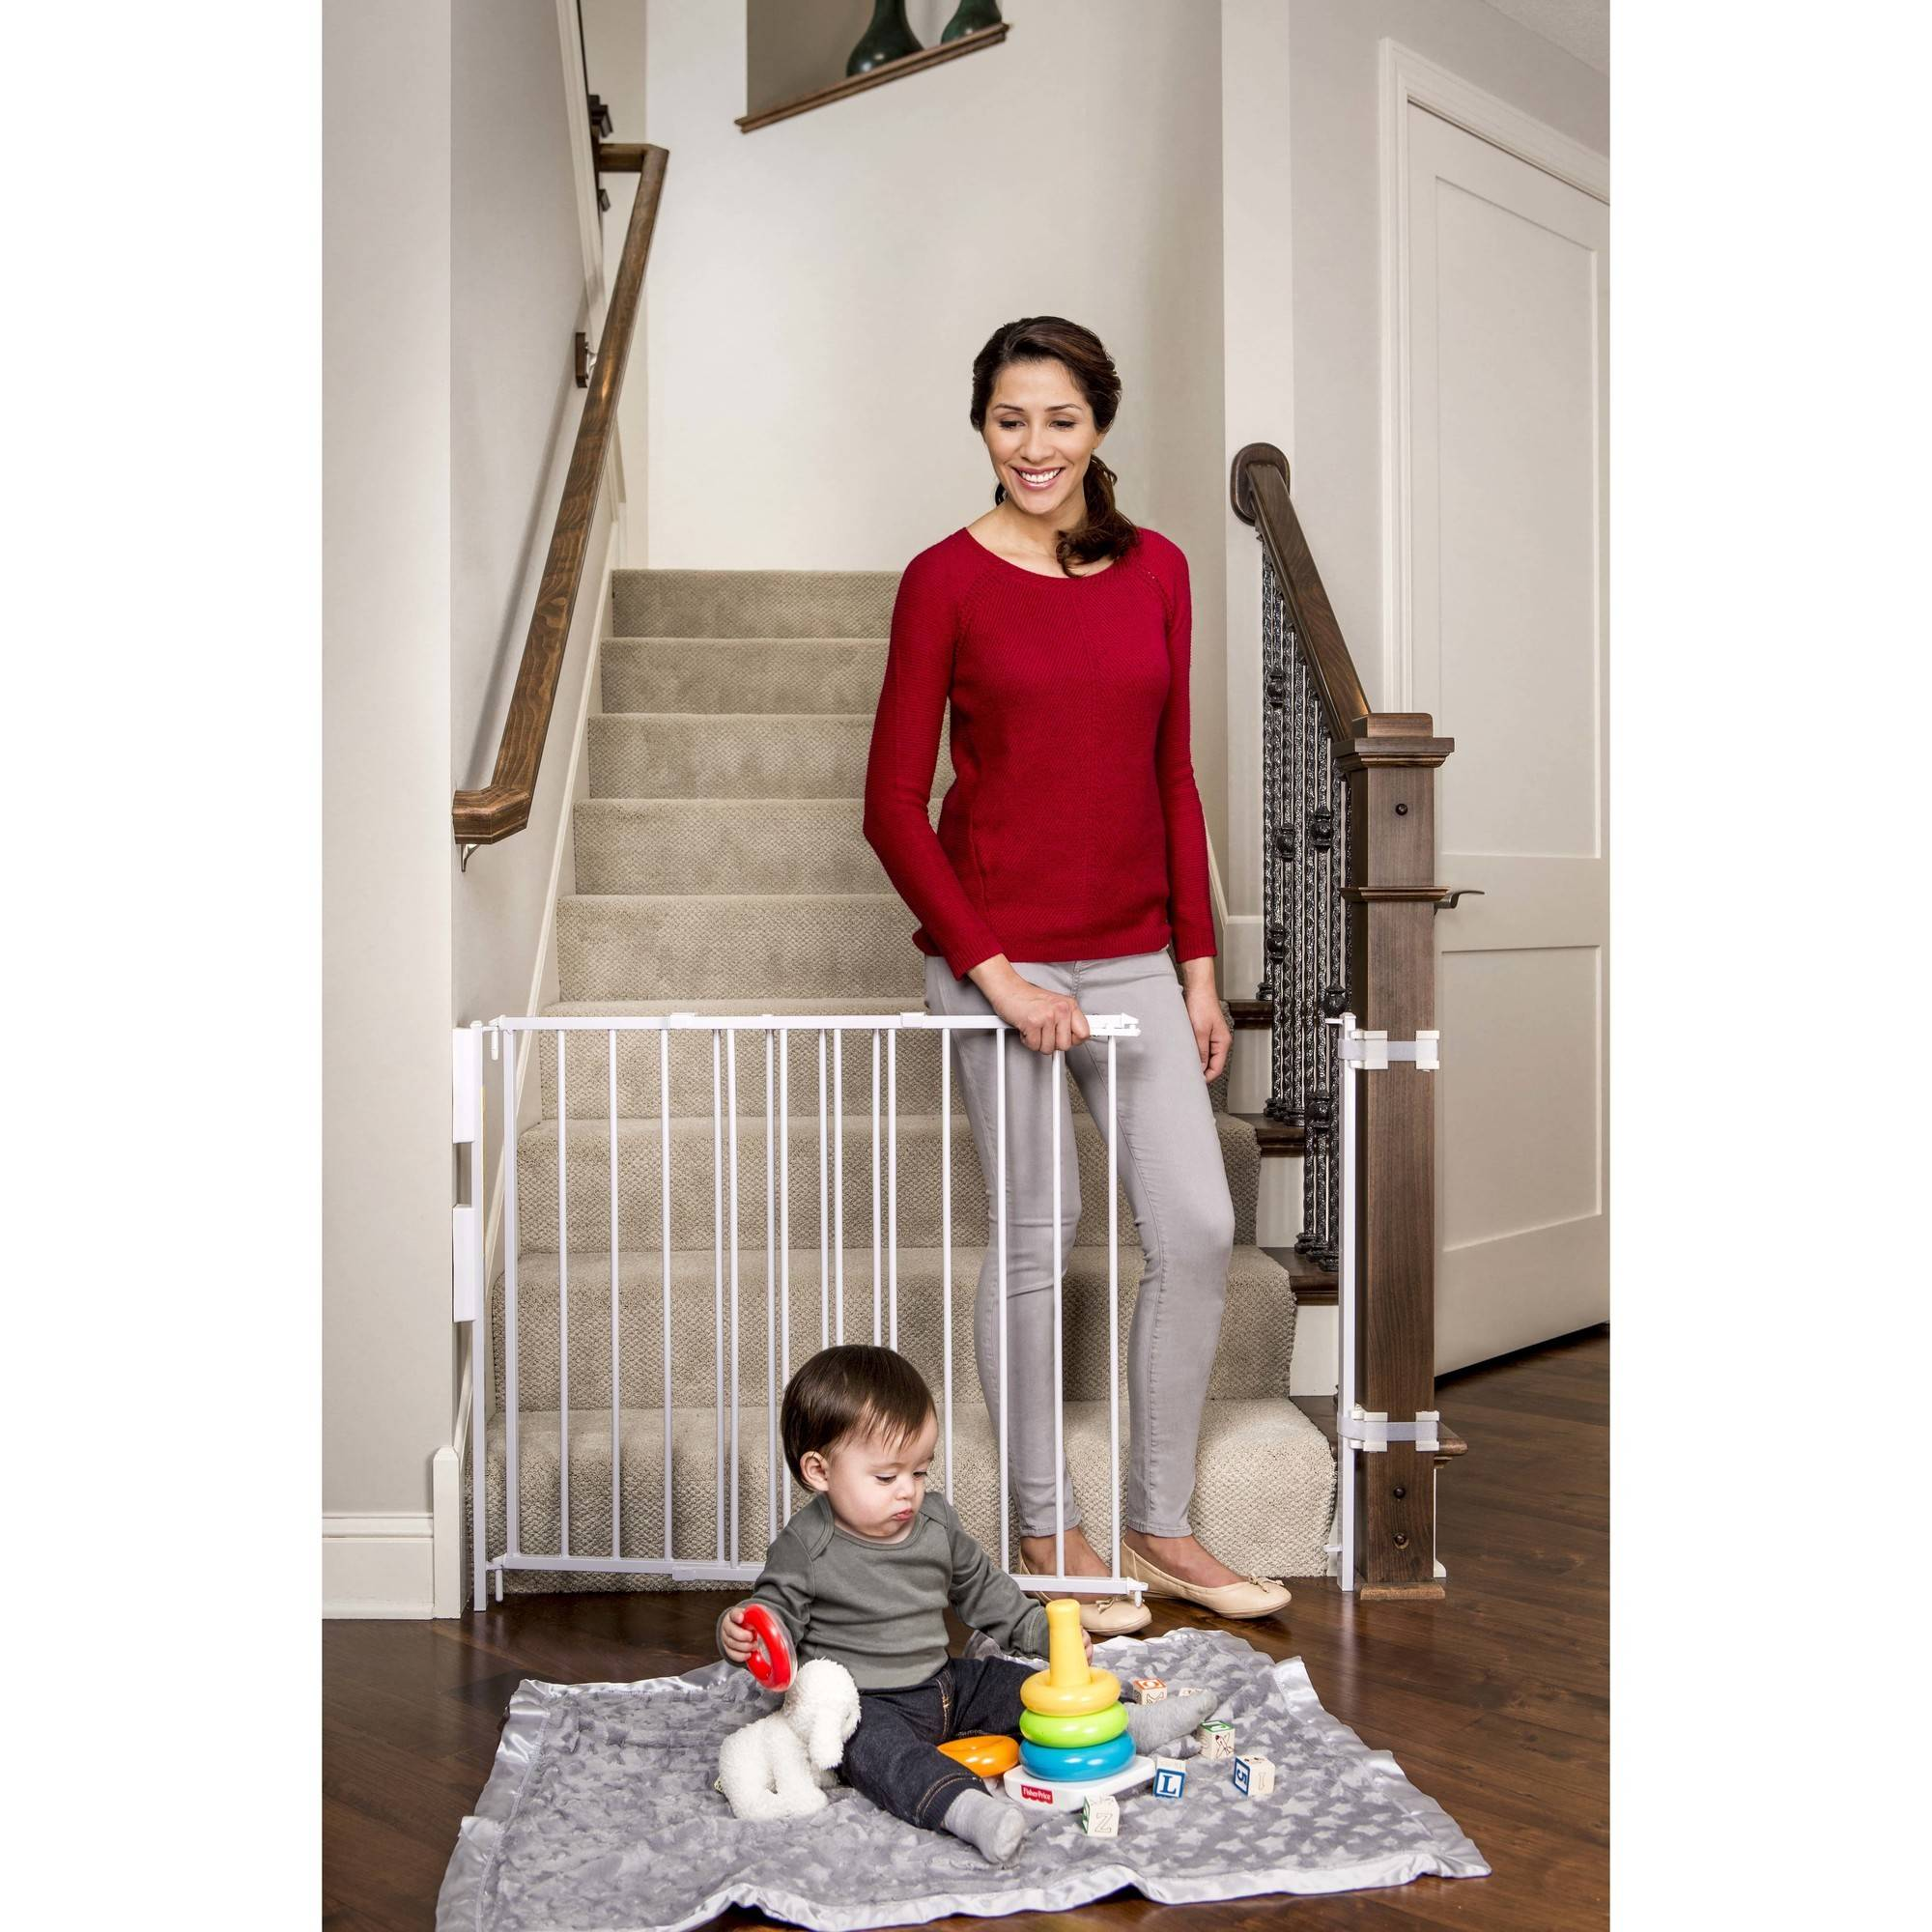 regalo extra tall top of stairway baby gate  with swing  - regalo extra tall top of stairway baby gate  with swing door walmartcom